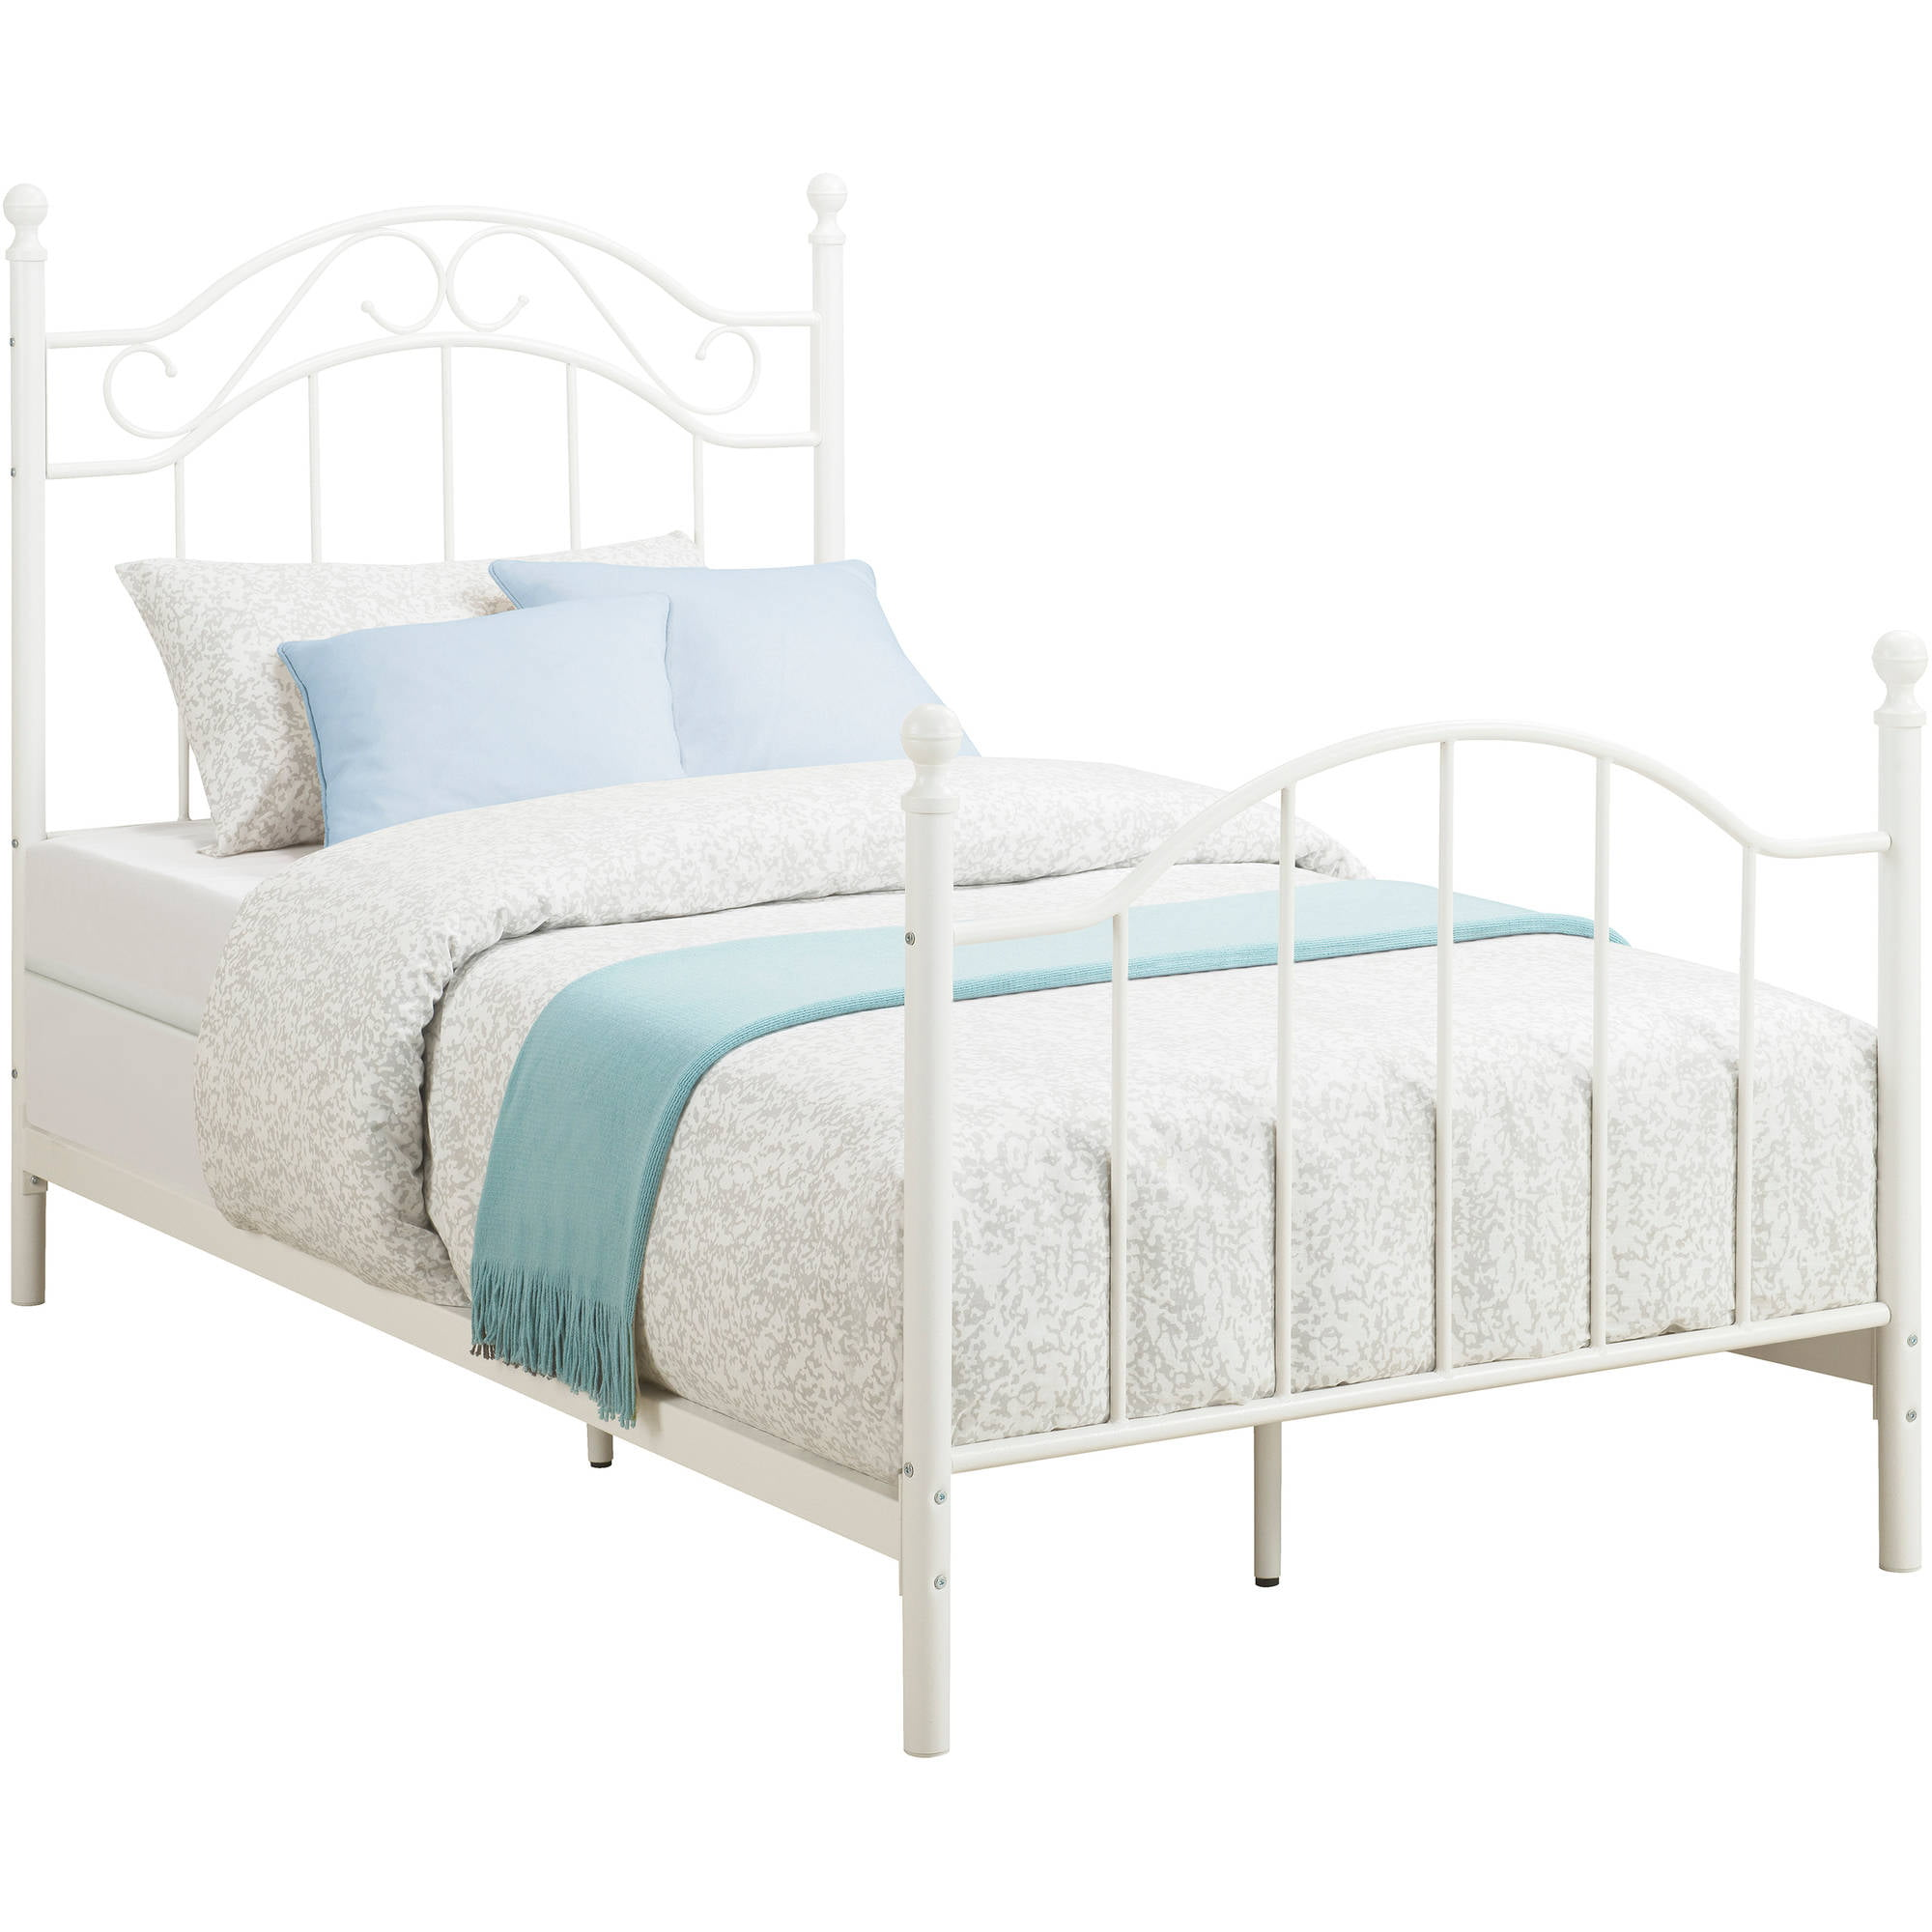 Mainstays Twin Metal Bed White Walmartcom